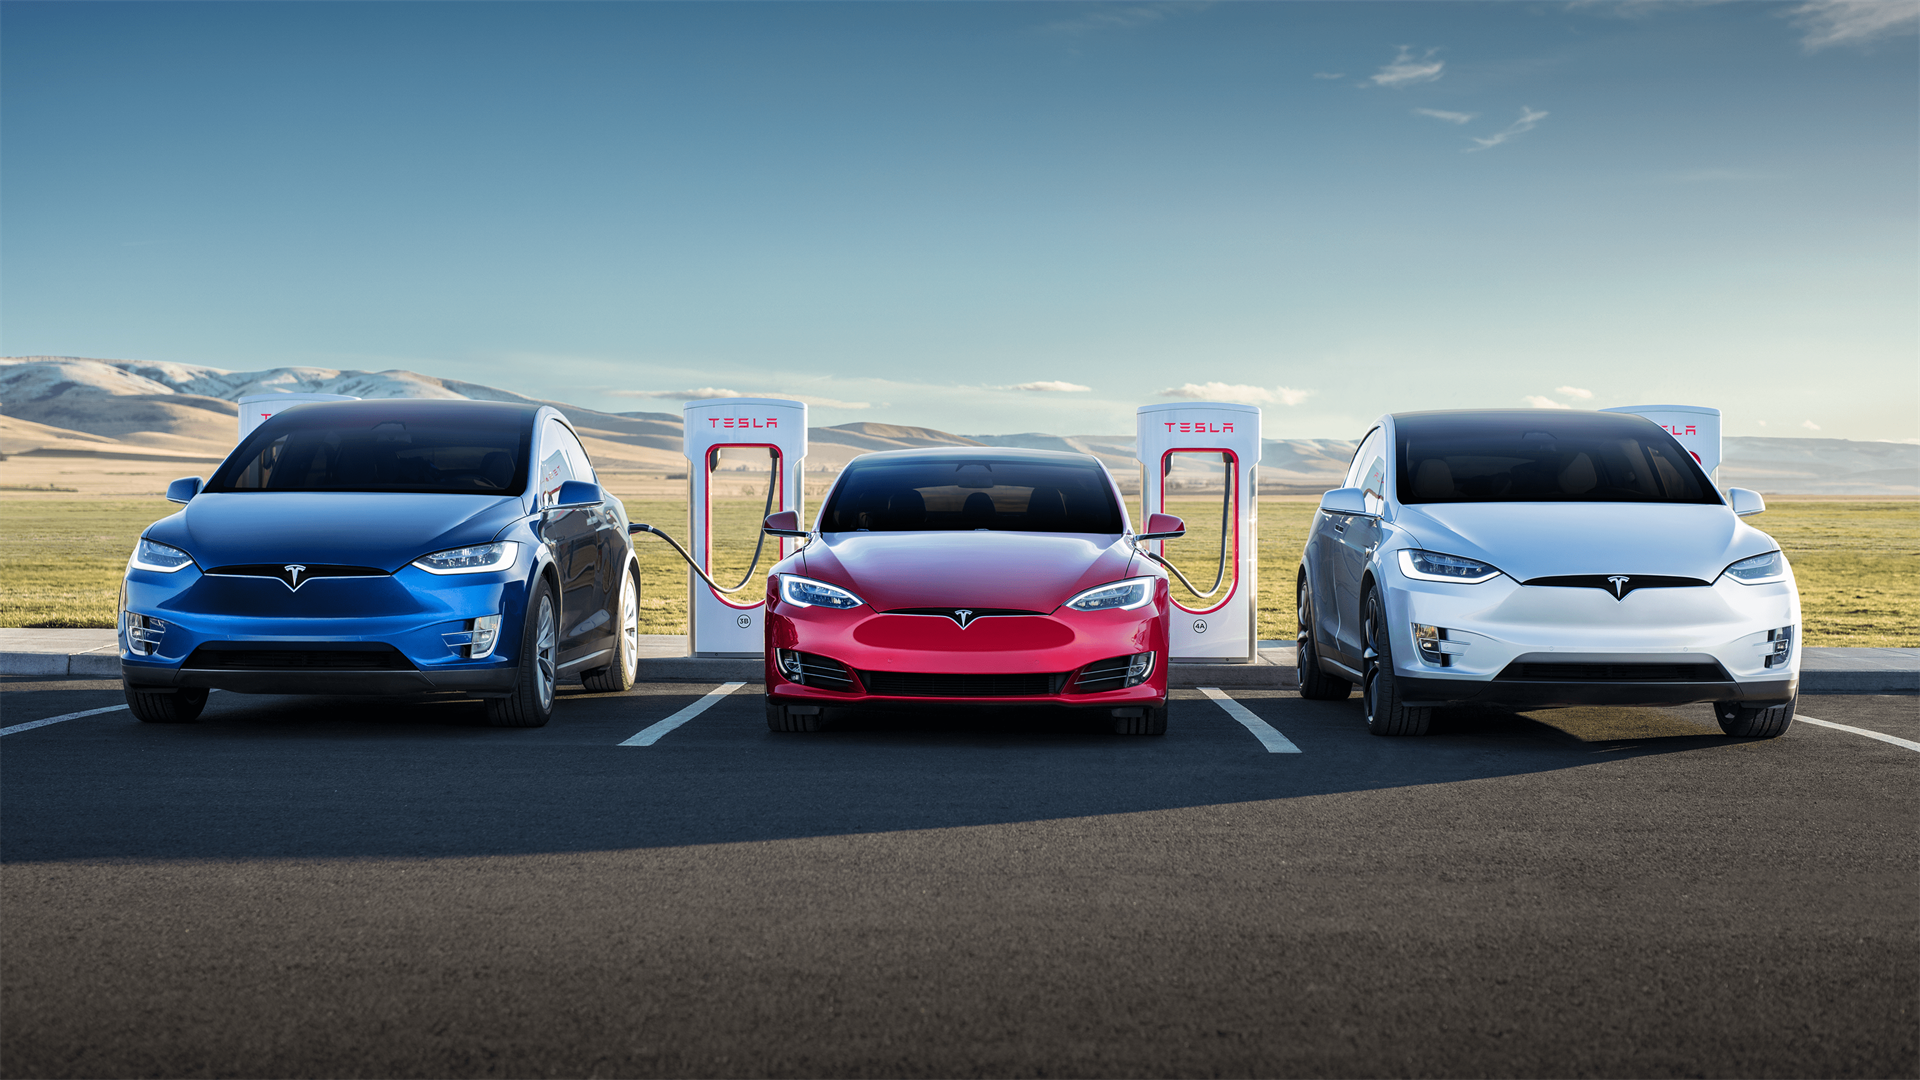 2019 When I Initially Published This Article The Florida Supercharger Rate Posted On Official Tesla Website Was 31 Per Kwh Which A 41